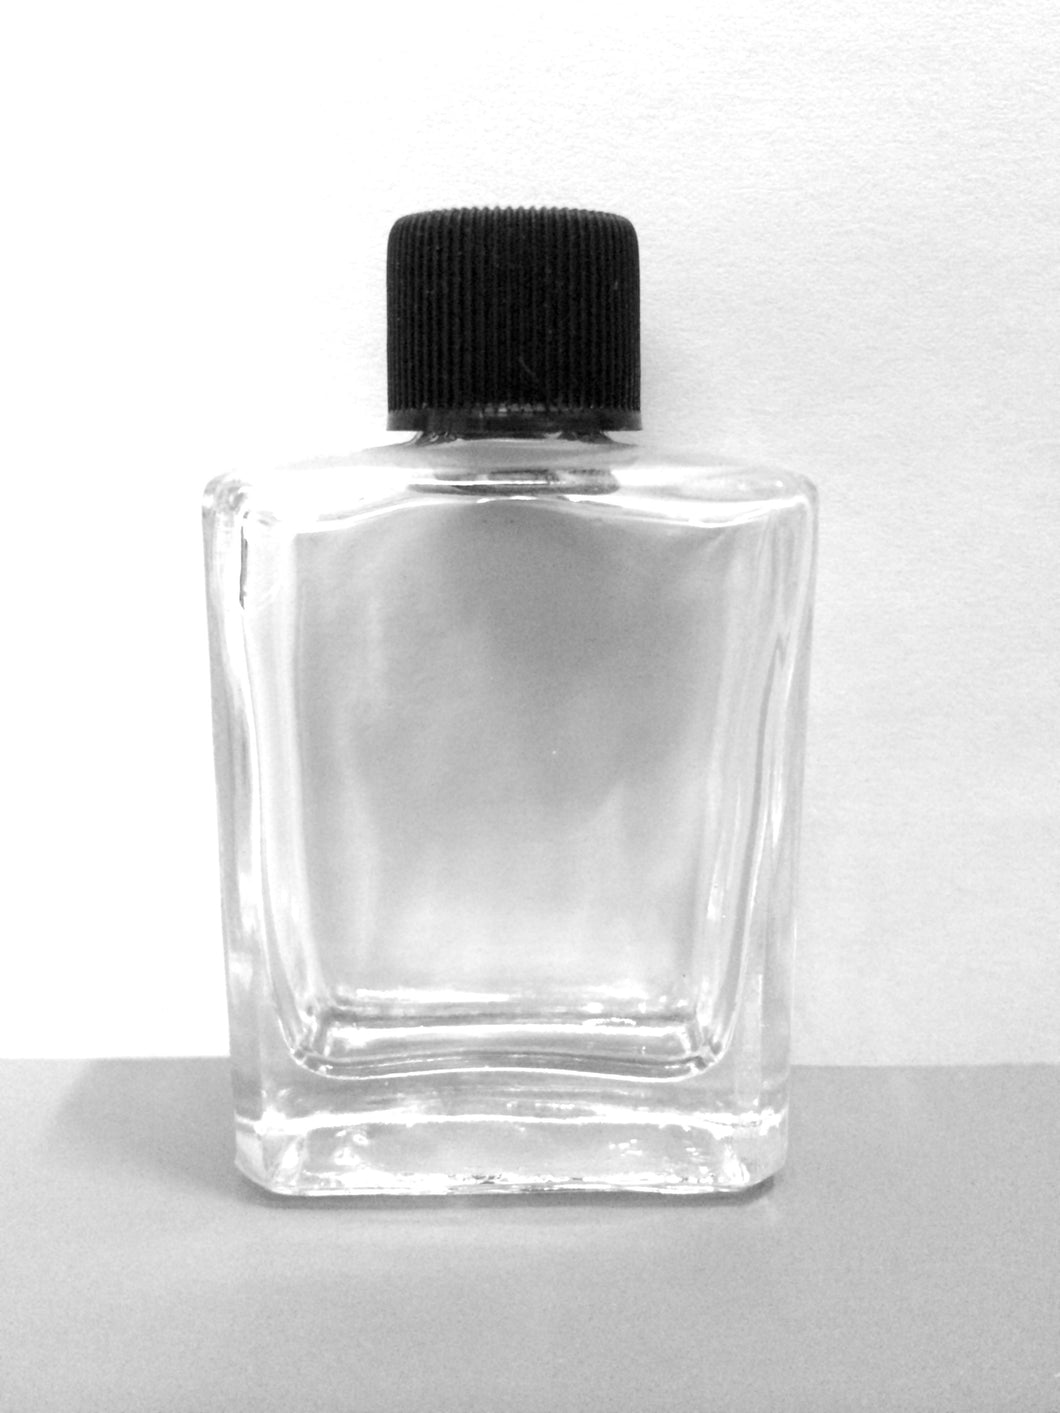 1/2 oz Rectangle Shape Bottle with Short Caps